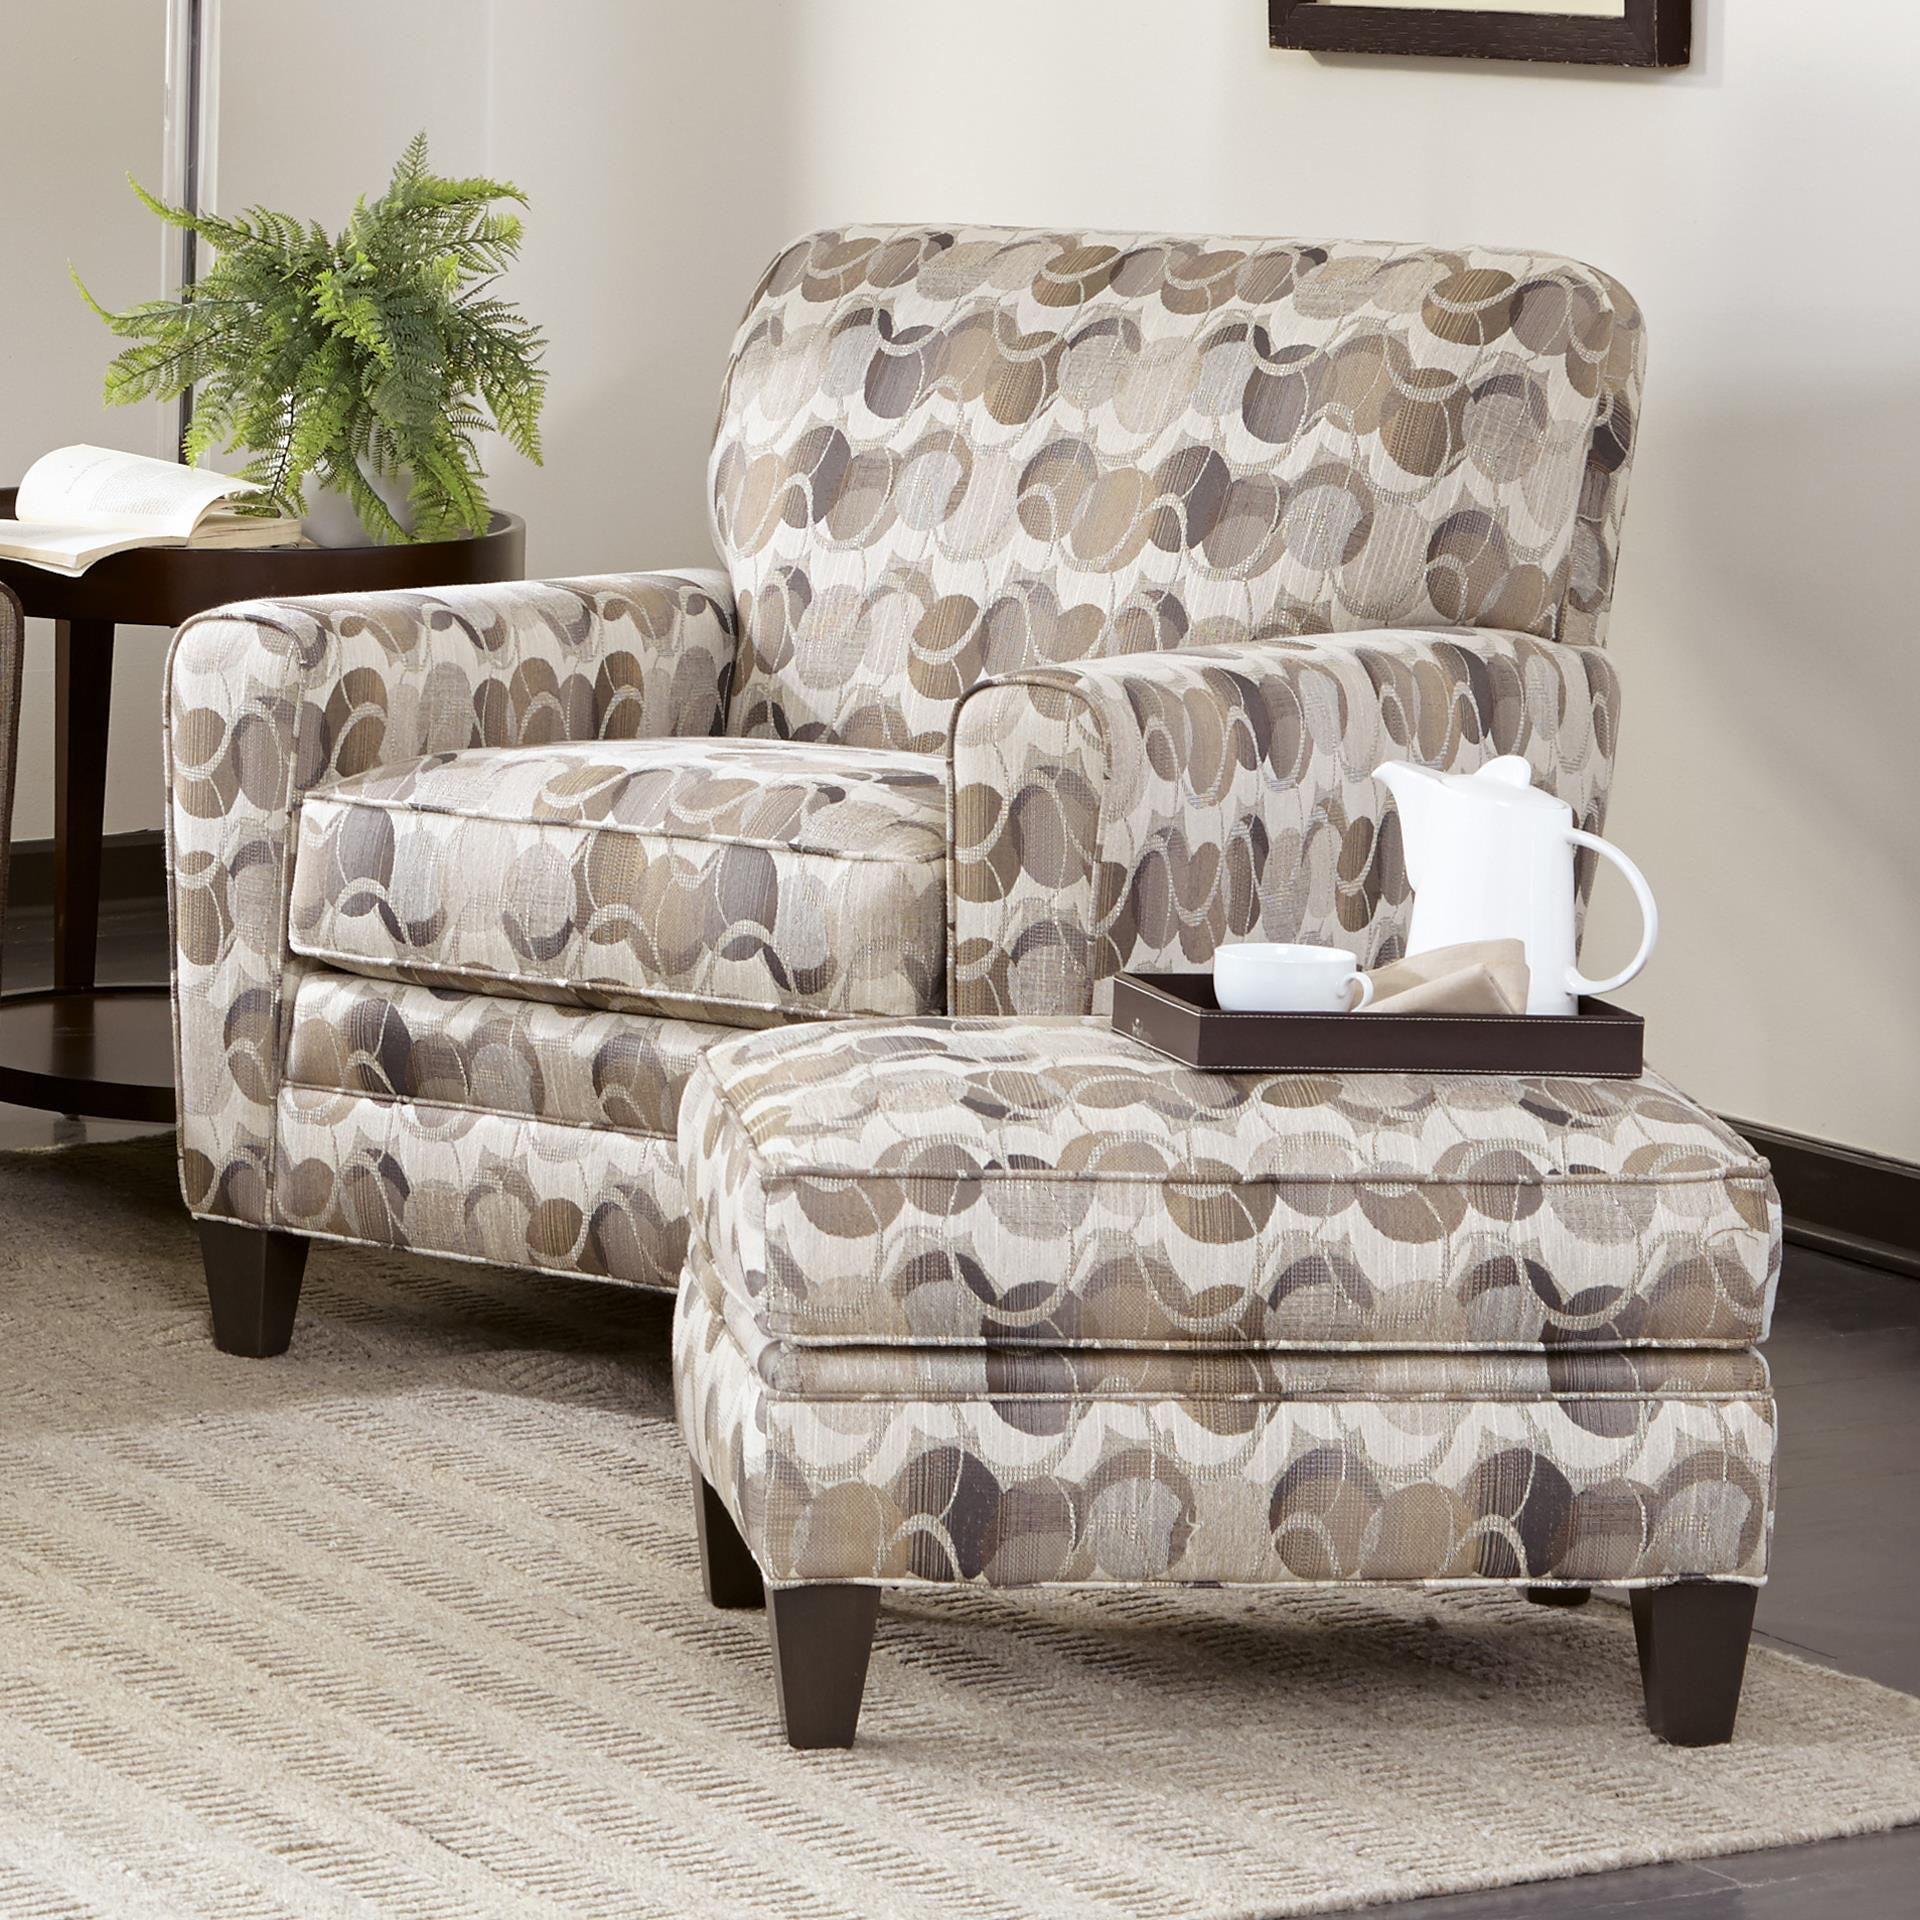 225 Chair & Ottoman Set by Smith Brothers at Story & Lee Furniture